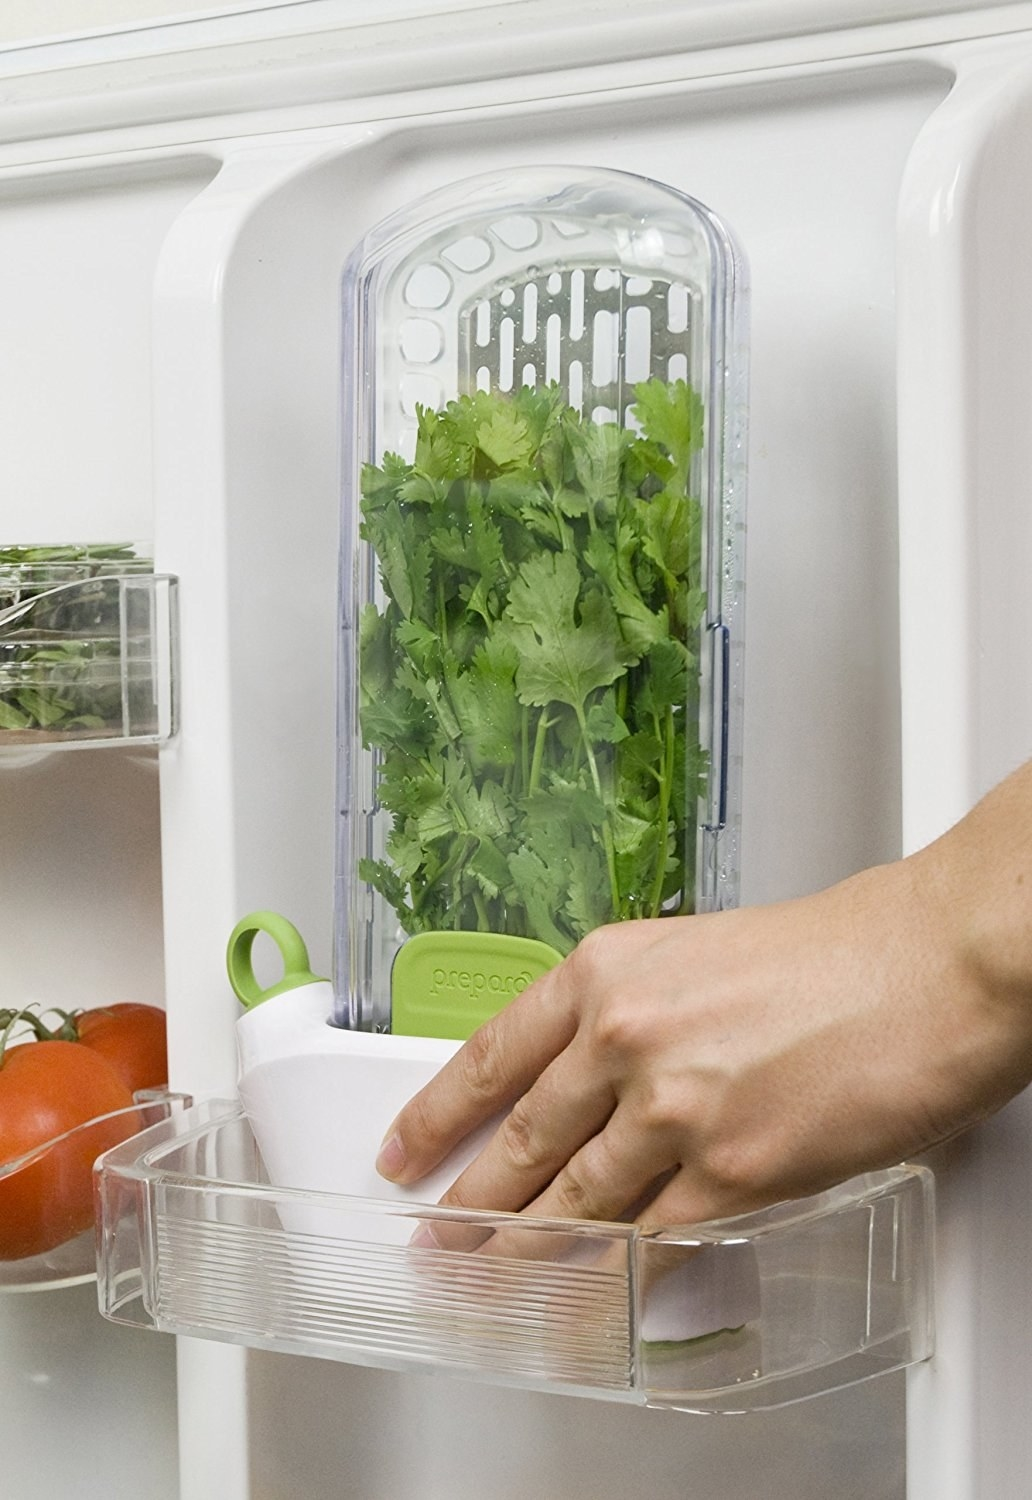 fridge door shelf with the vertical storage unit that holds the herbs inside